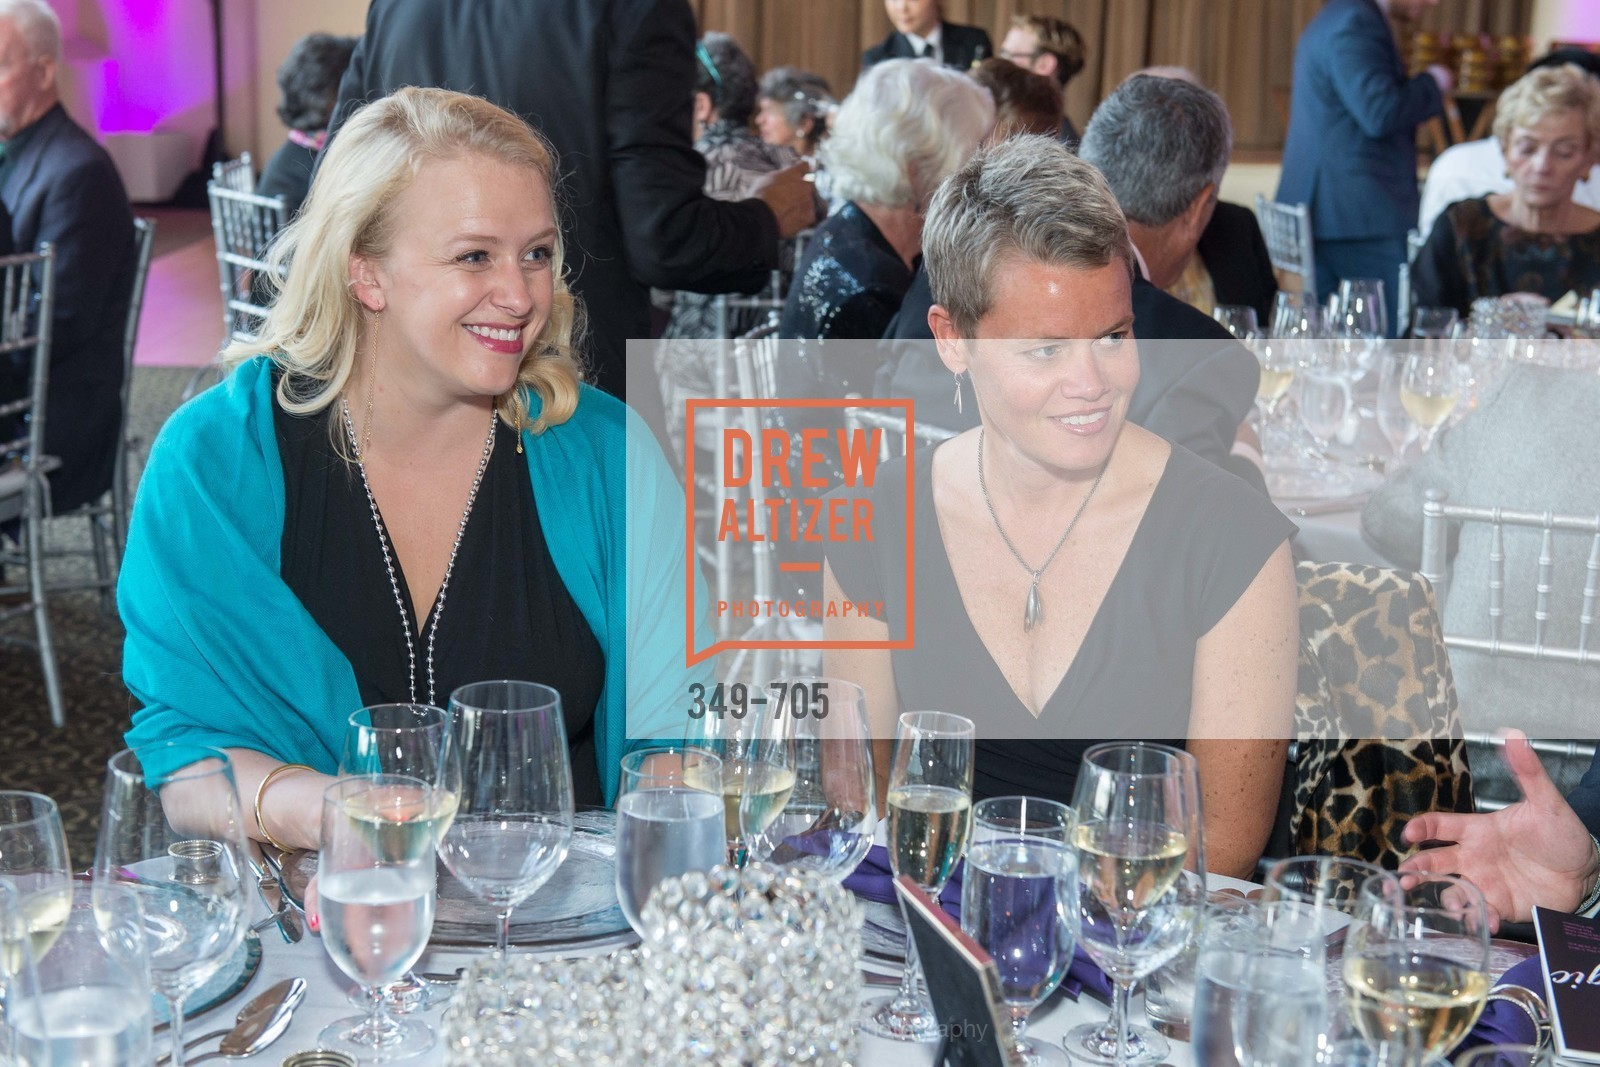 Ariana Snowdon, Kristin Rothballer, MAGIC THEATRE'S 2015 Gala:  A Night of Magic, US, May 8th, 2015,Drew Altizer, Drew Altizer Photography, full-service agency, private events, San Francisco photographer, photographer california